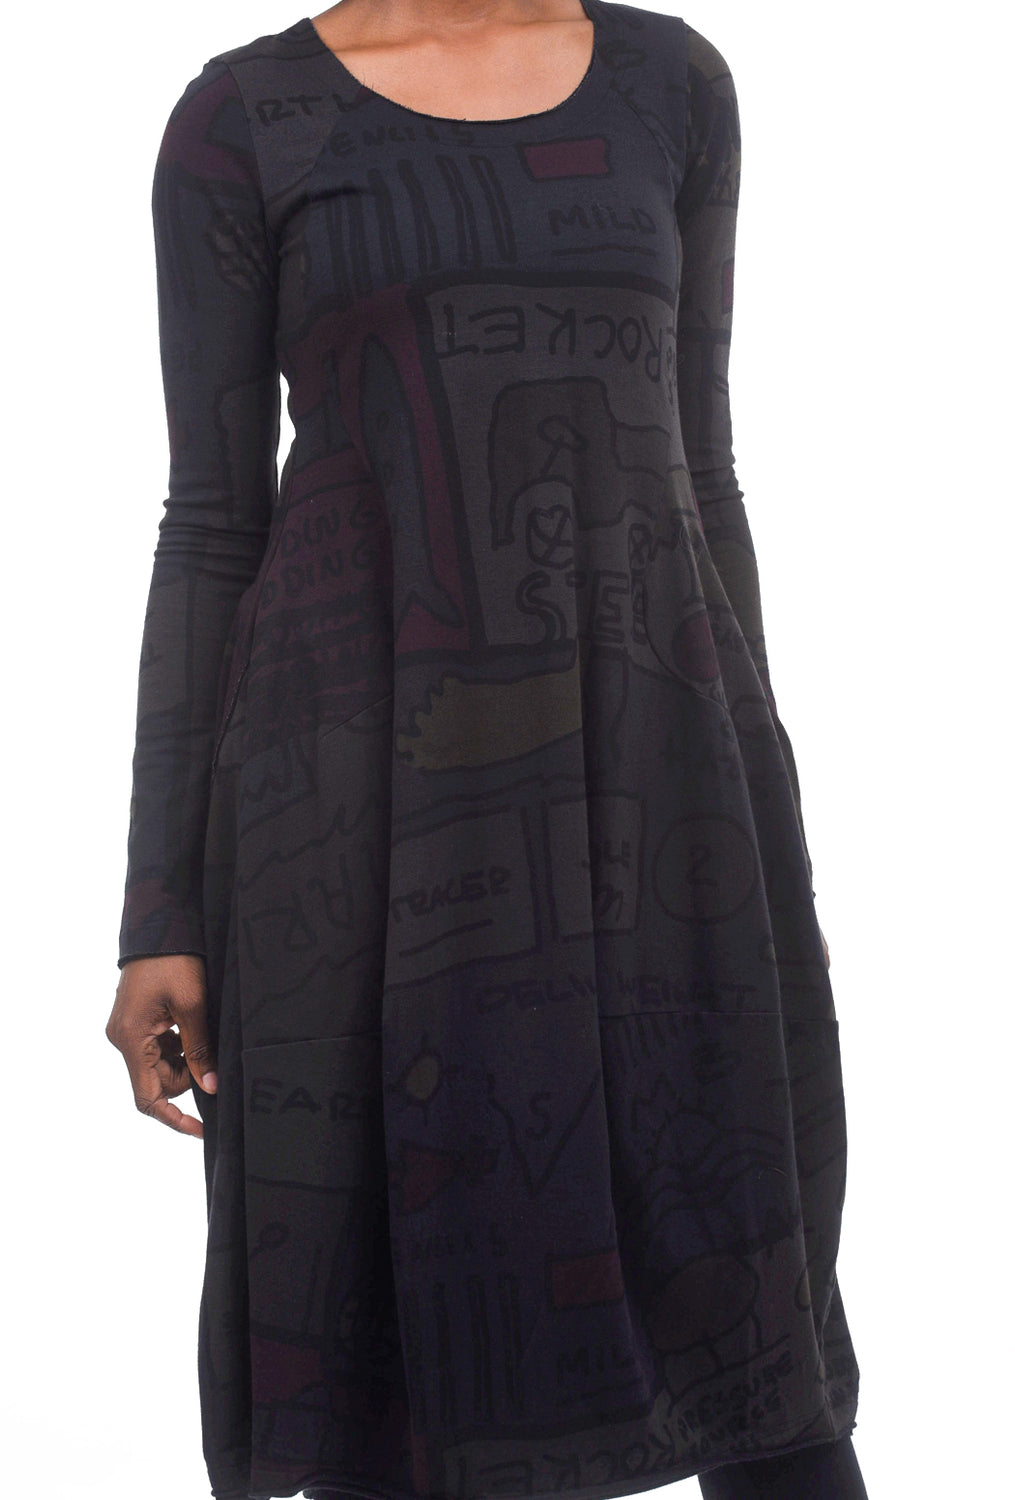 Rundholz Black Label Symbols Jersey Shapely Dress, Multi Print